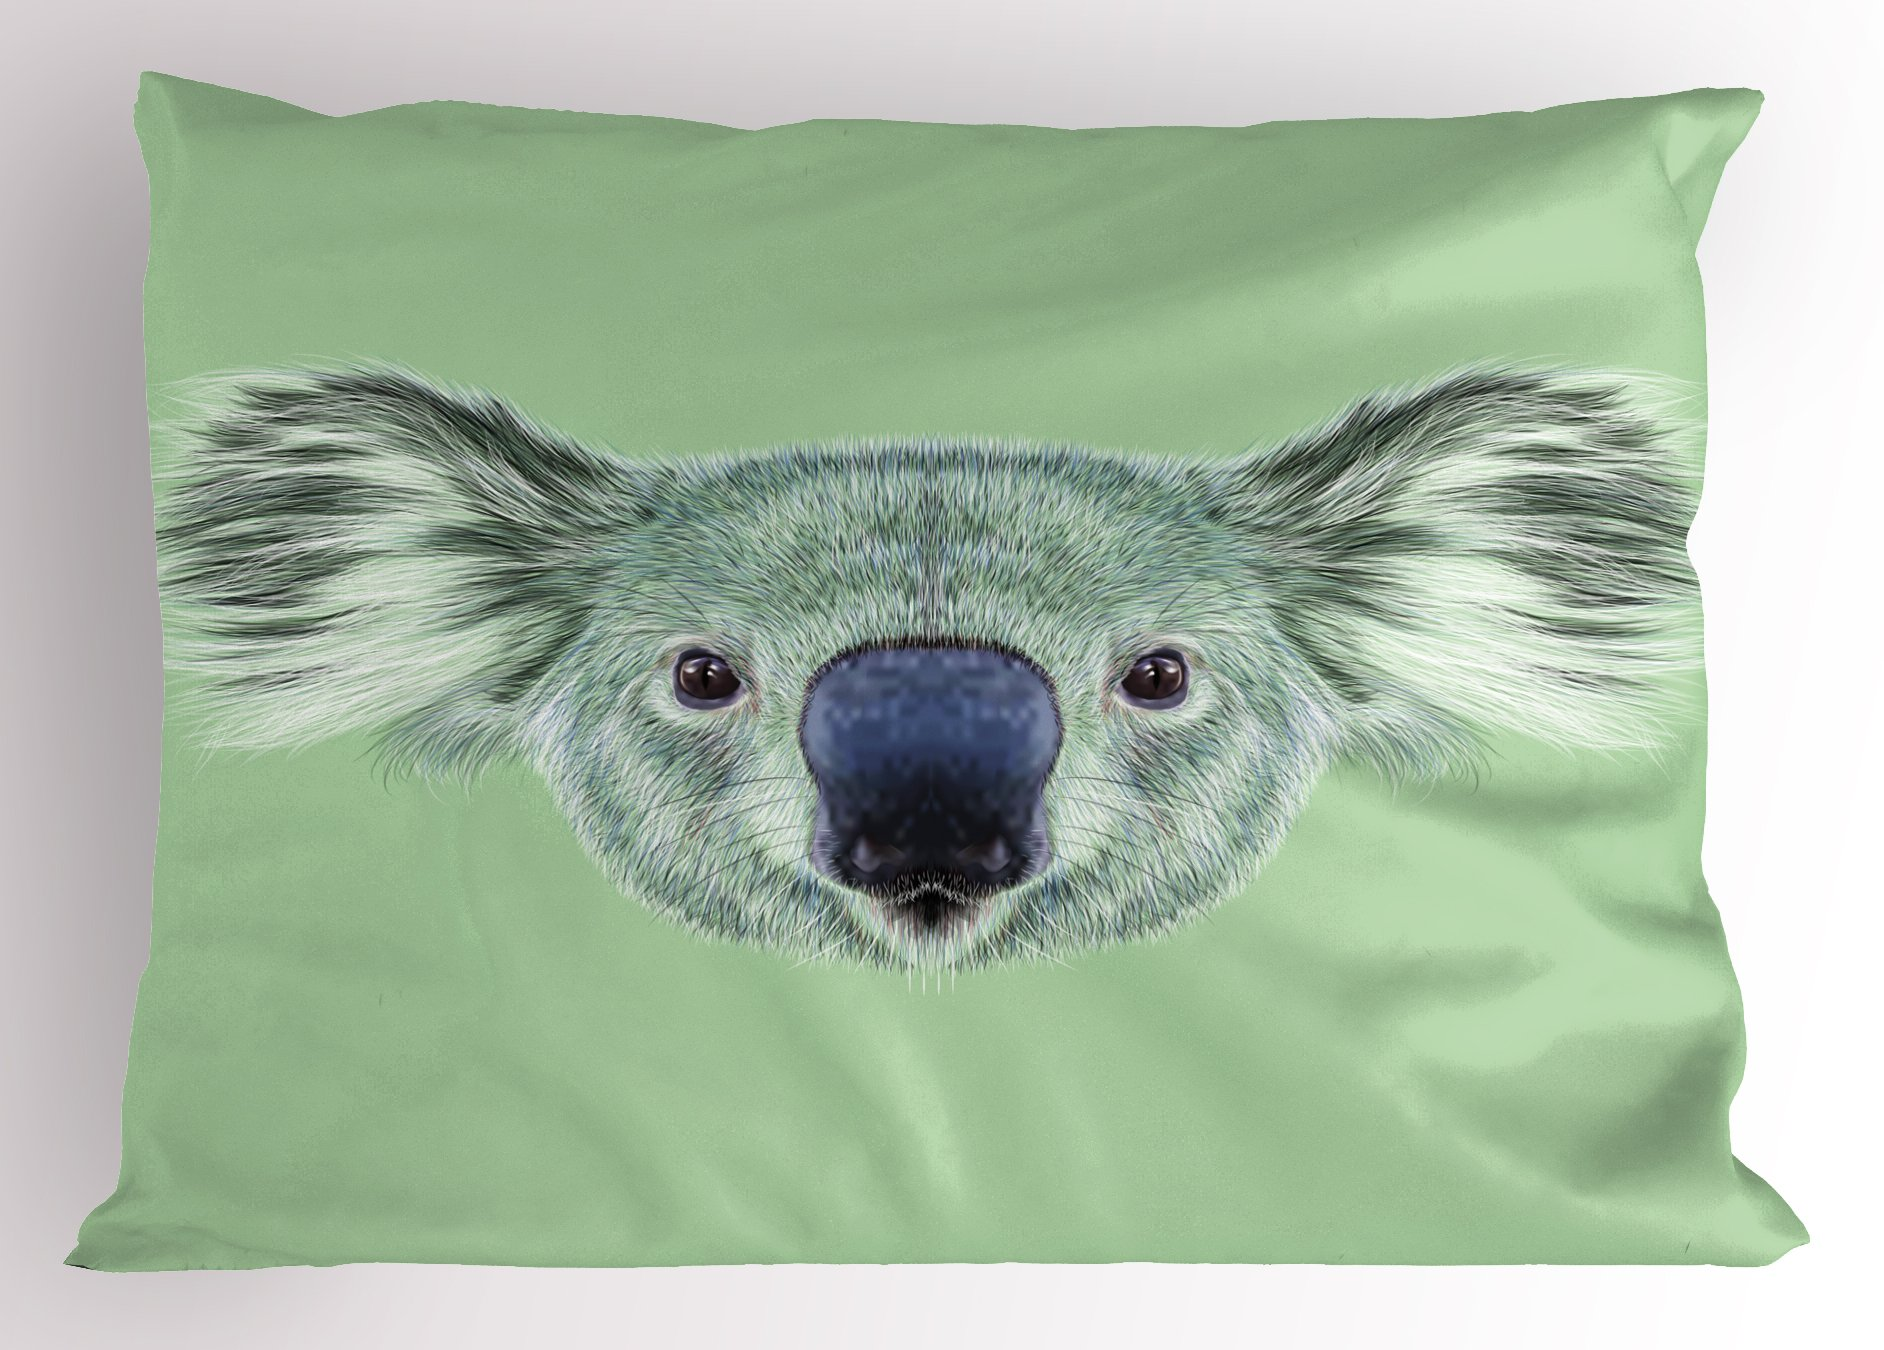 Ambesonne Animal Pillow Sham, Tropical Koala Bear Portrait Cute Jungle Hipster Zoo Wild Graphic Print, Decorative Standard Queen Size Printed Pillowcase, 30 X 20 inches, Mint and Reseda Green